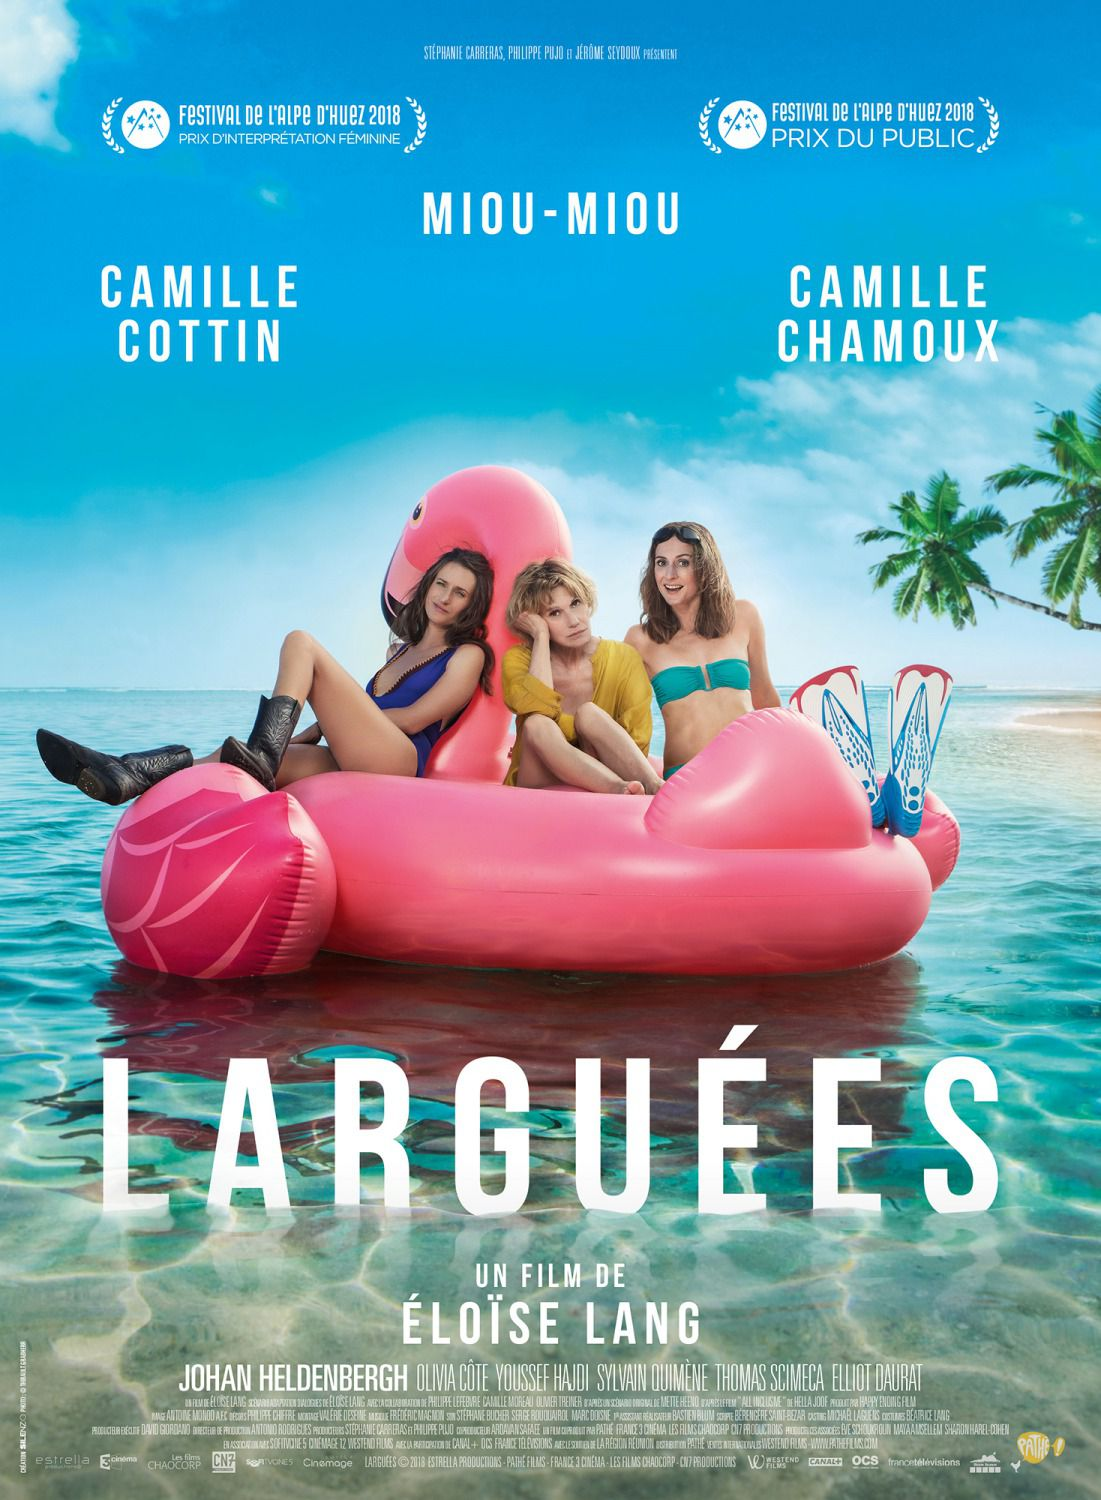 Larguees - Cast: Camille Cottin, Miou Miou, Camille Chamoux - film poster